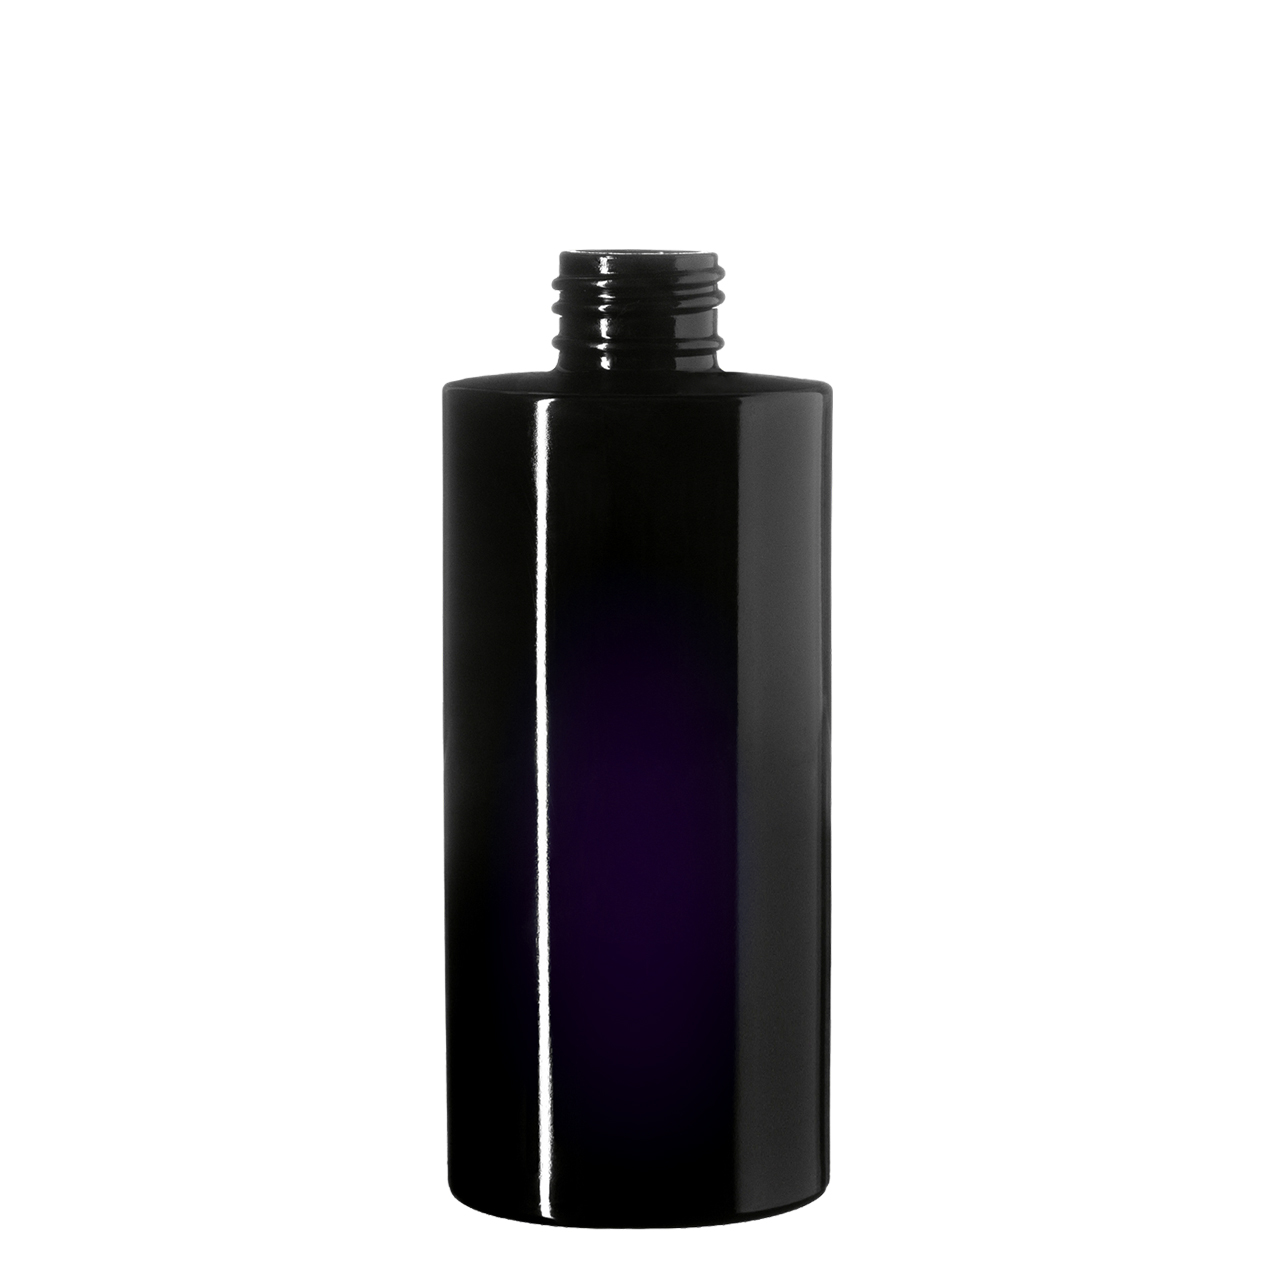 Cosmetic bottle Virgo 200 ml, Miron, 24/410 thread